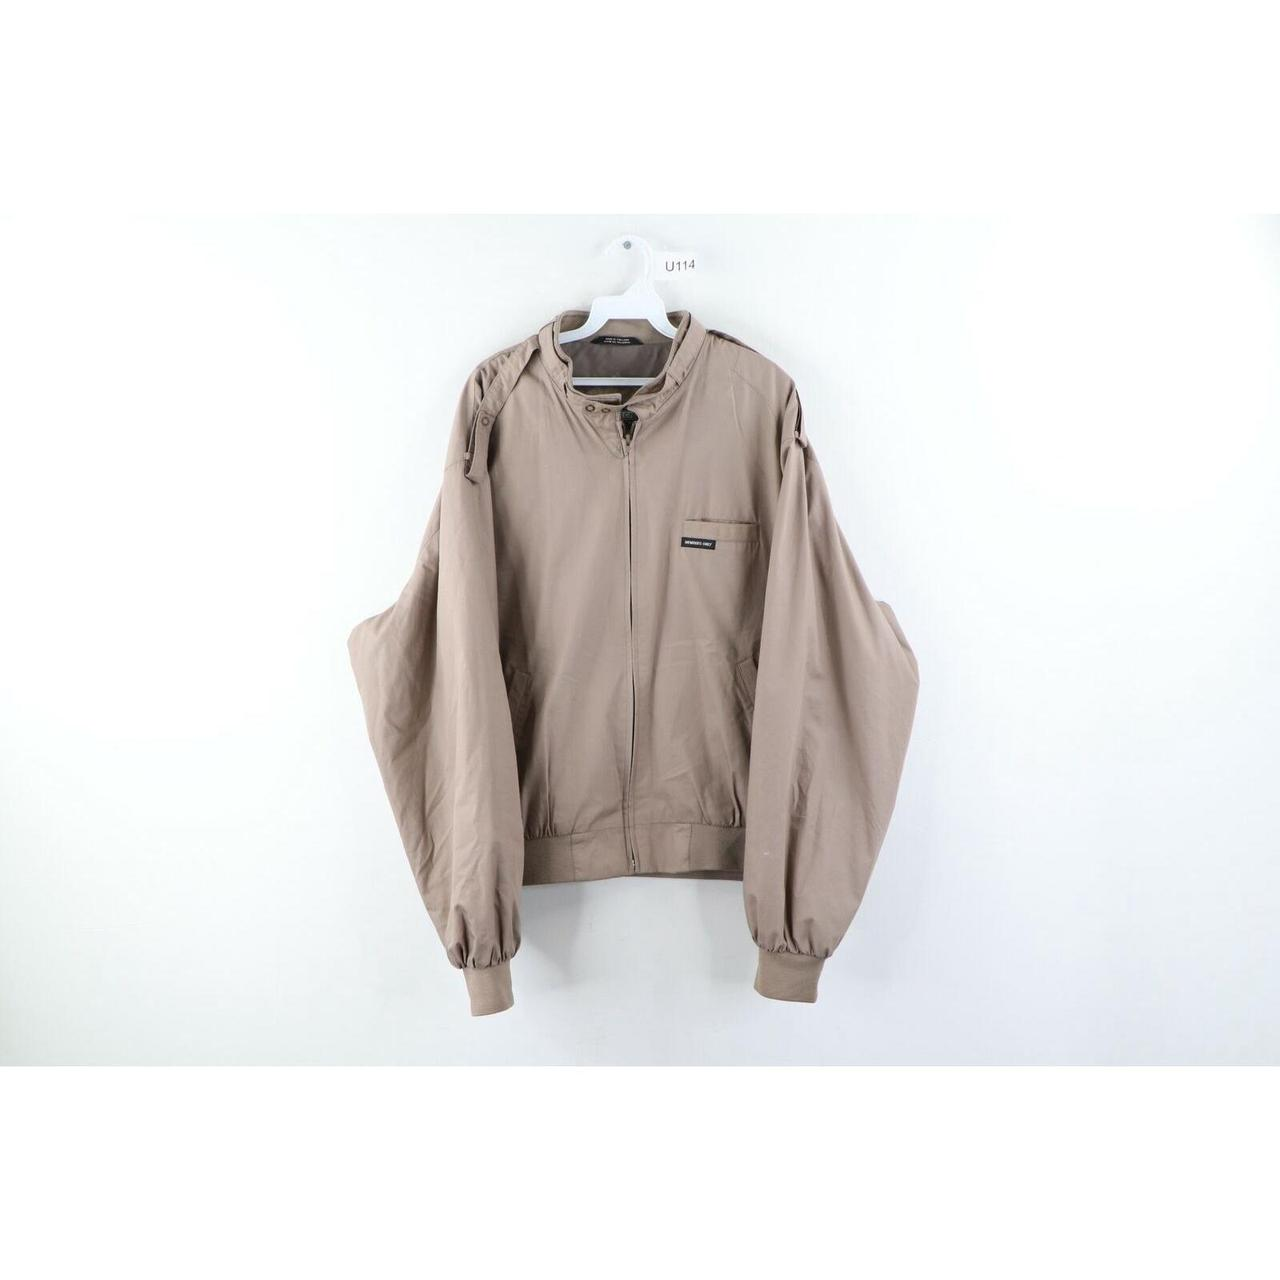 Product Image 1 - Vintage 90s Members Only Mens